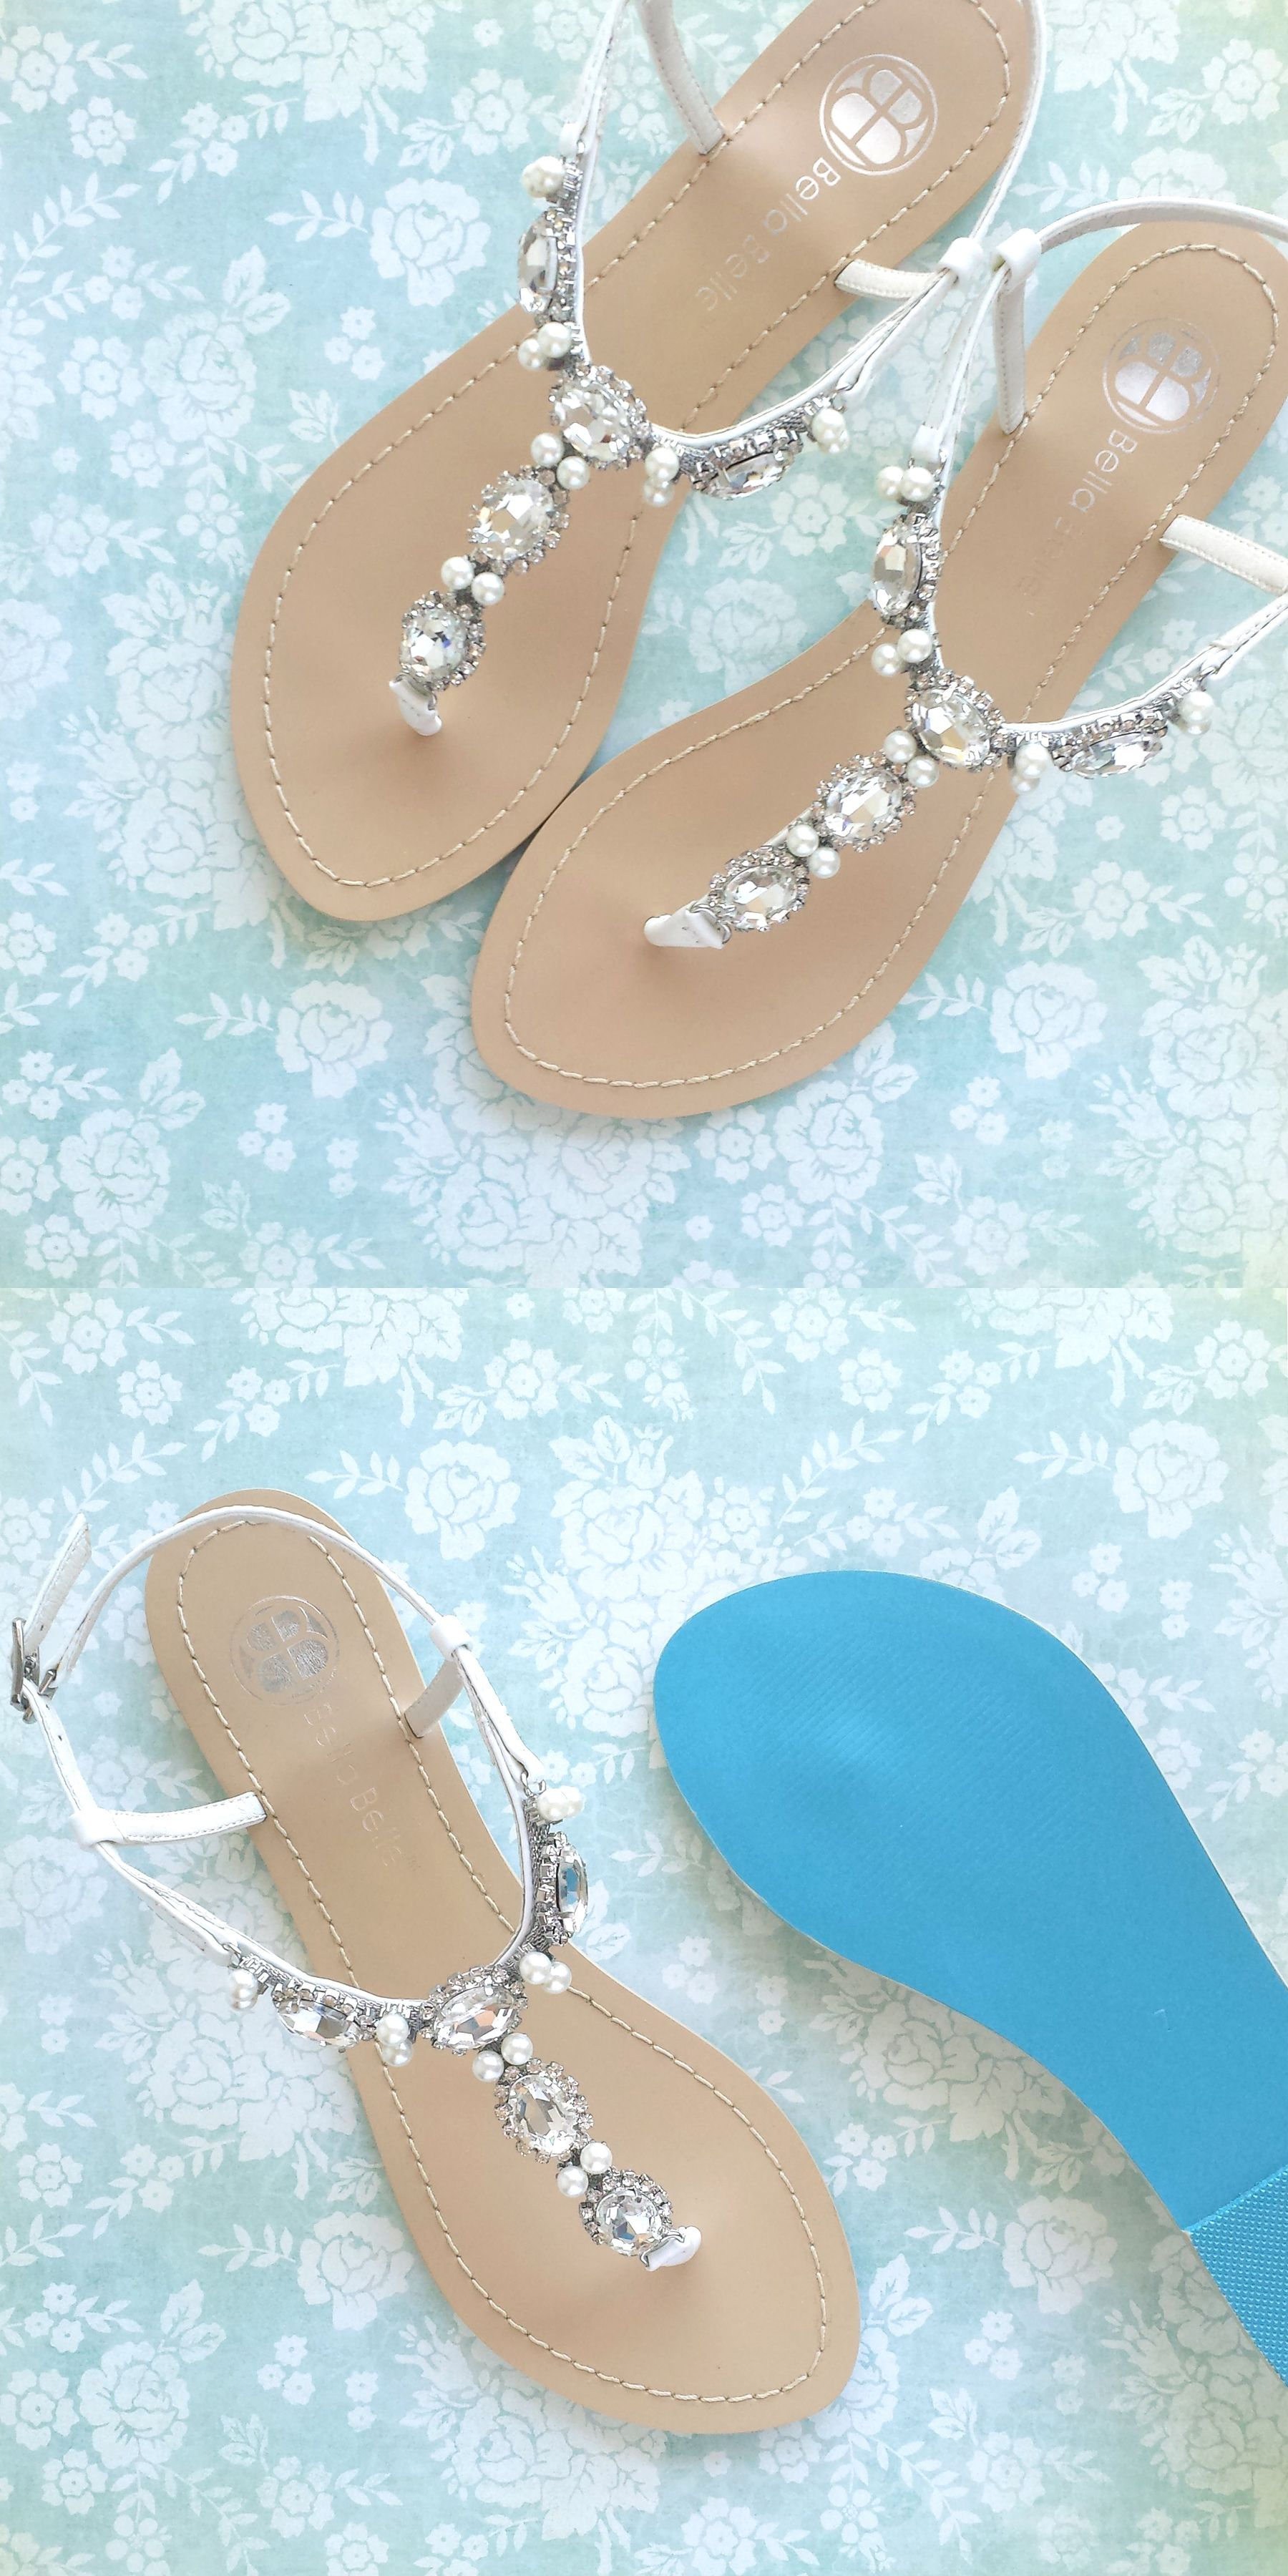 Bella Belle Beach Wedding Crystal And Pearl Sandals With Something Blue Sole  #weddingsandals